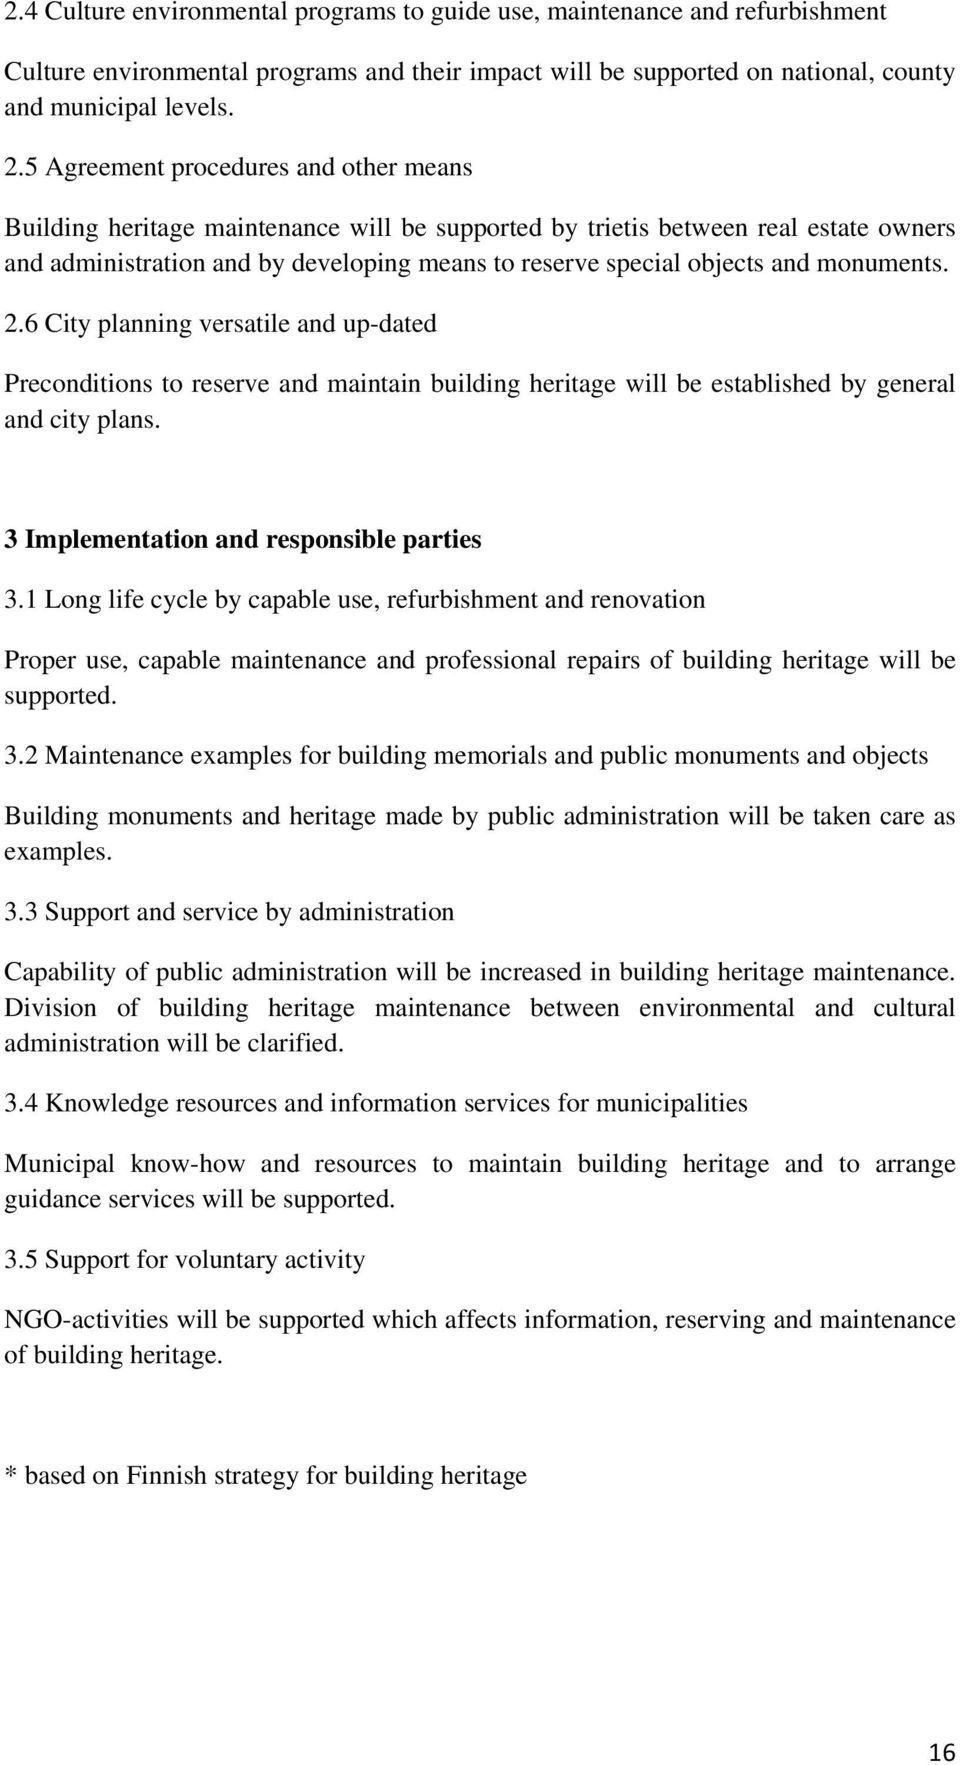 monuments. 2.6 City planning versatile and up-dated Preconditions to reserve and maintain building heritage will be established by general and city plans. 3 Implementation and responsible parties 3.